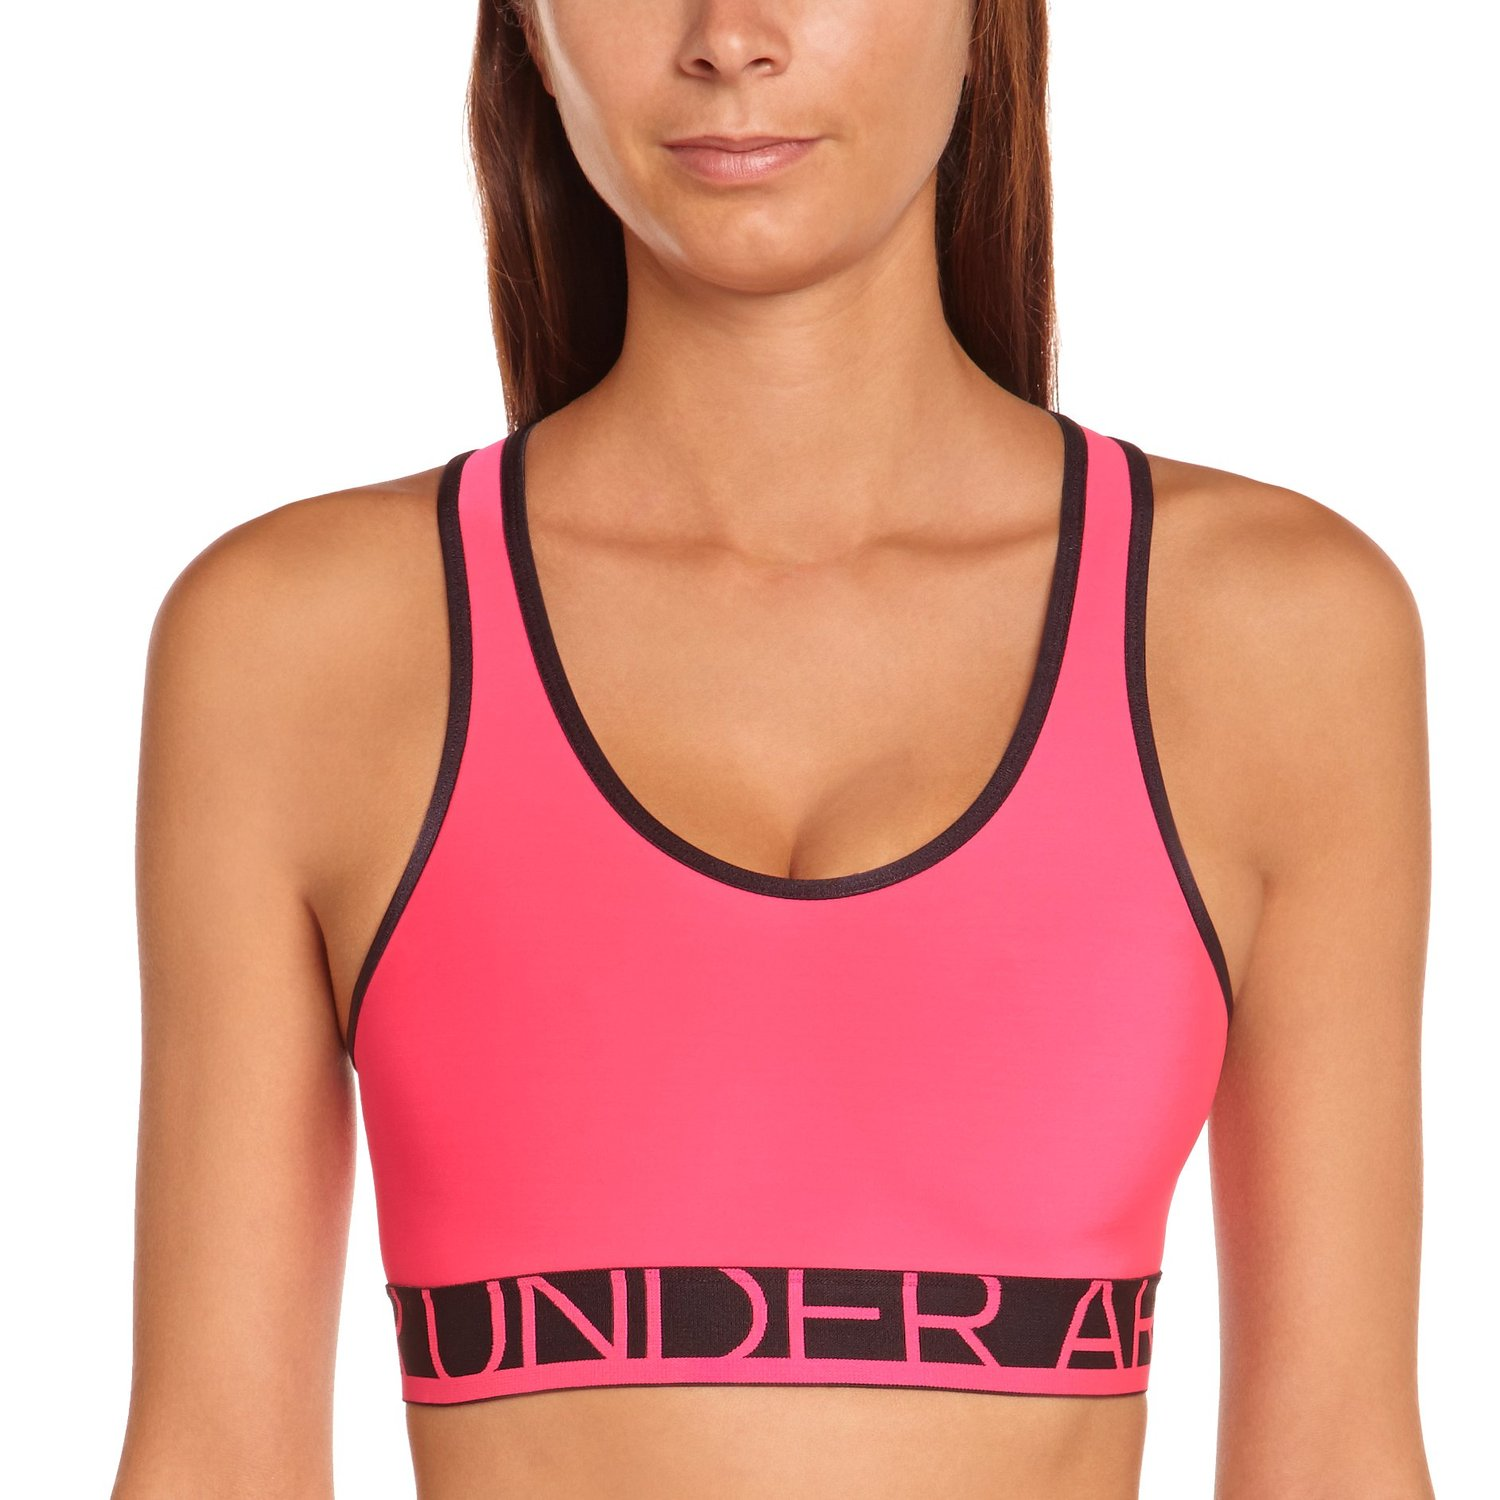 Under Armour Lady Still Gotta Have It Support Sports Bra: Amazon.co.uk: Clothing